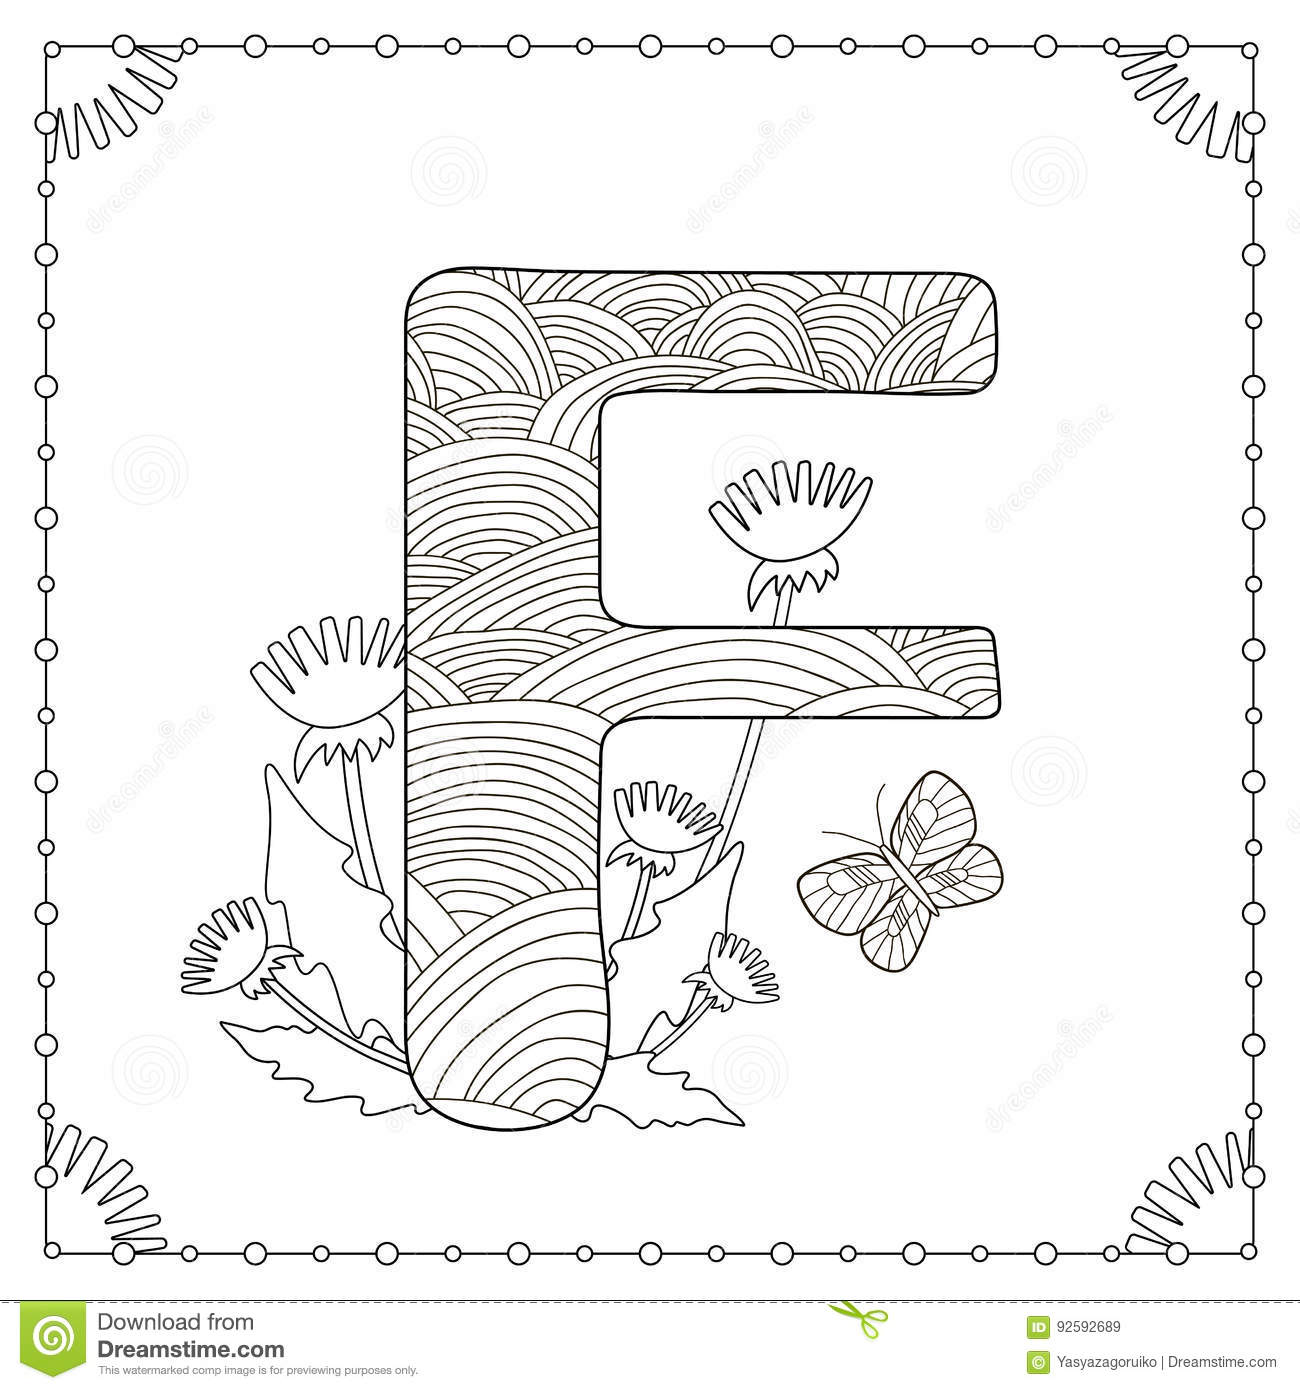 Alphabet Coloring Page Stock Vector Illustration Of Black